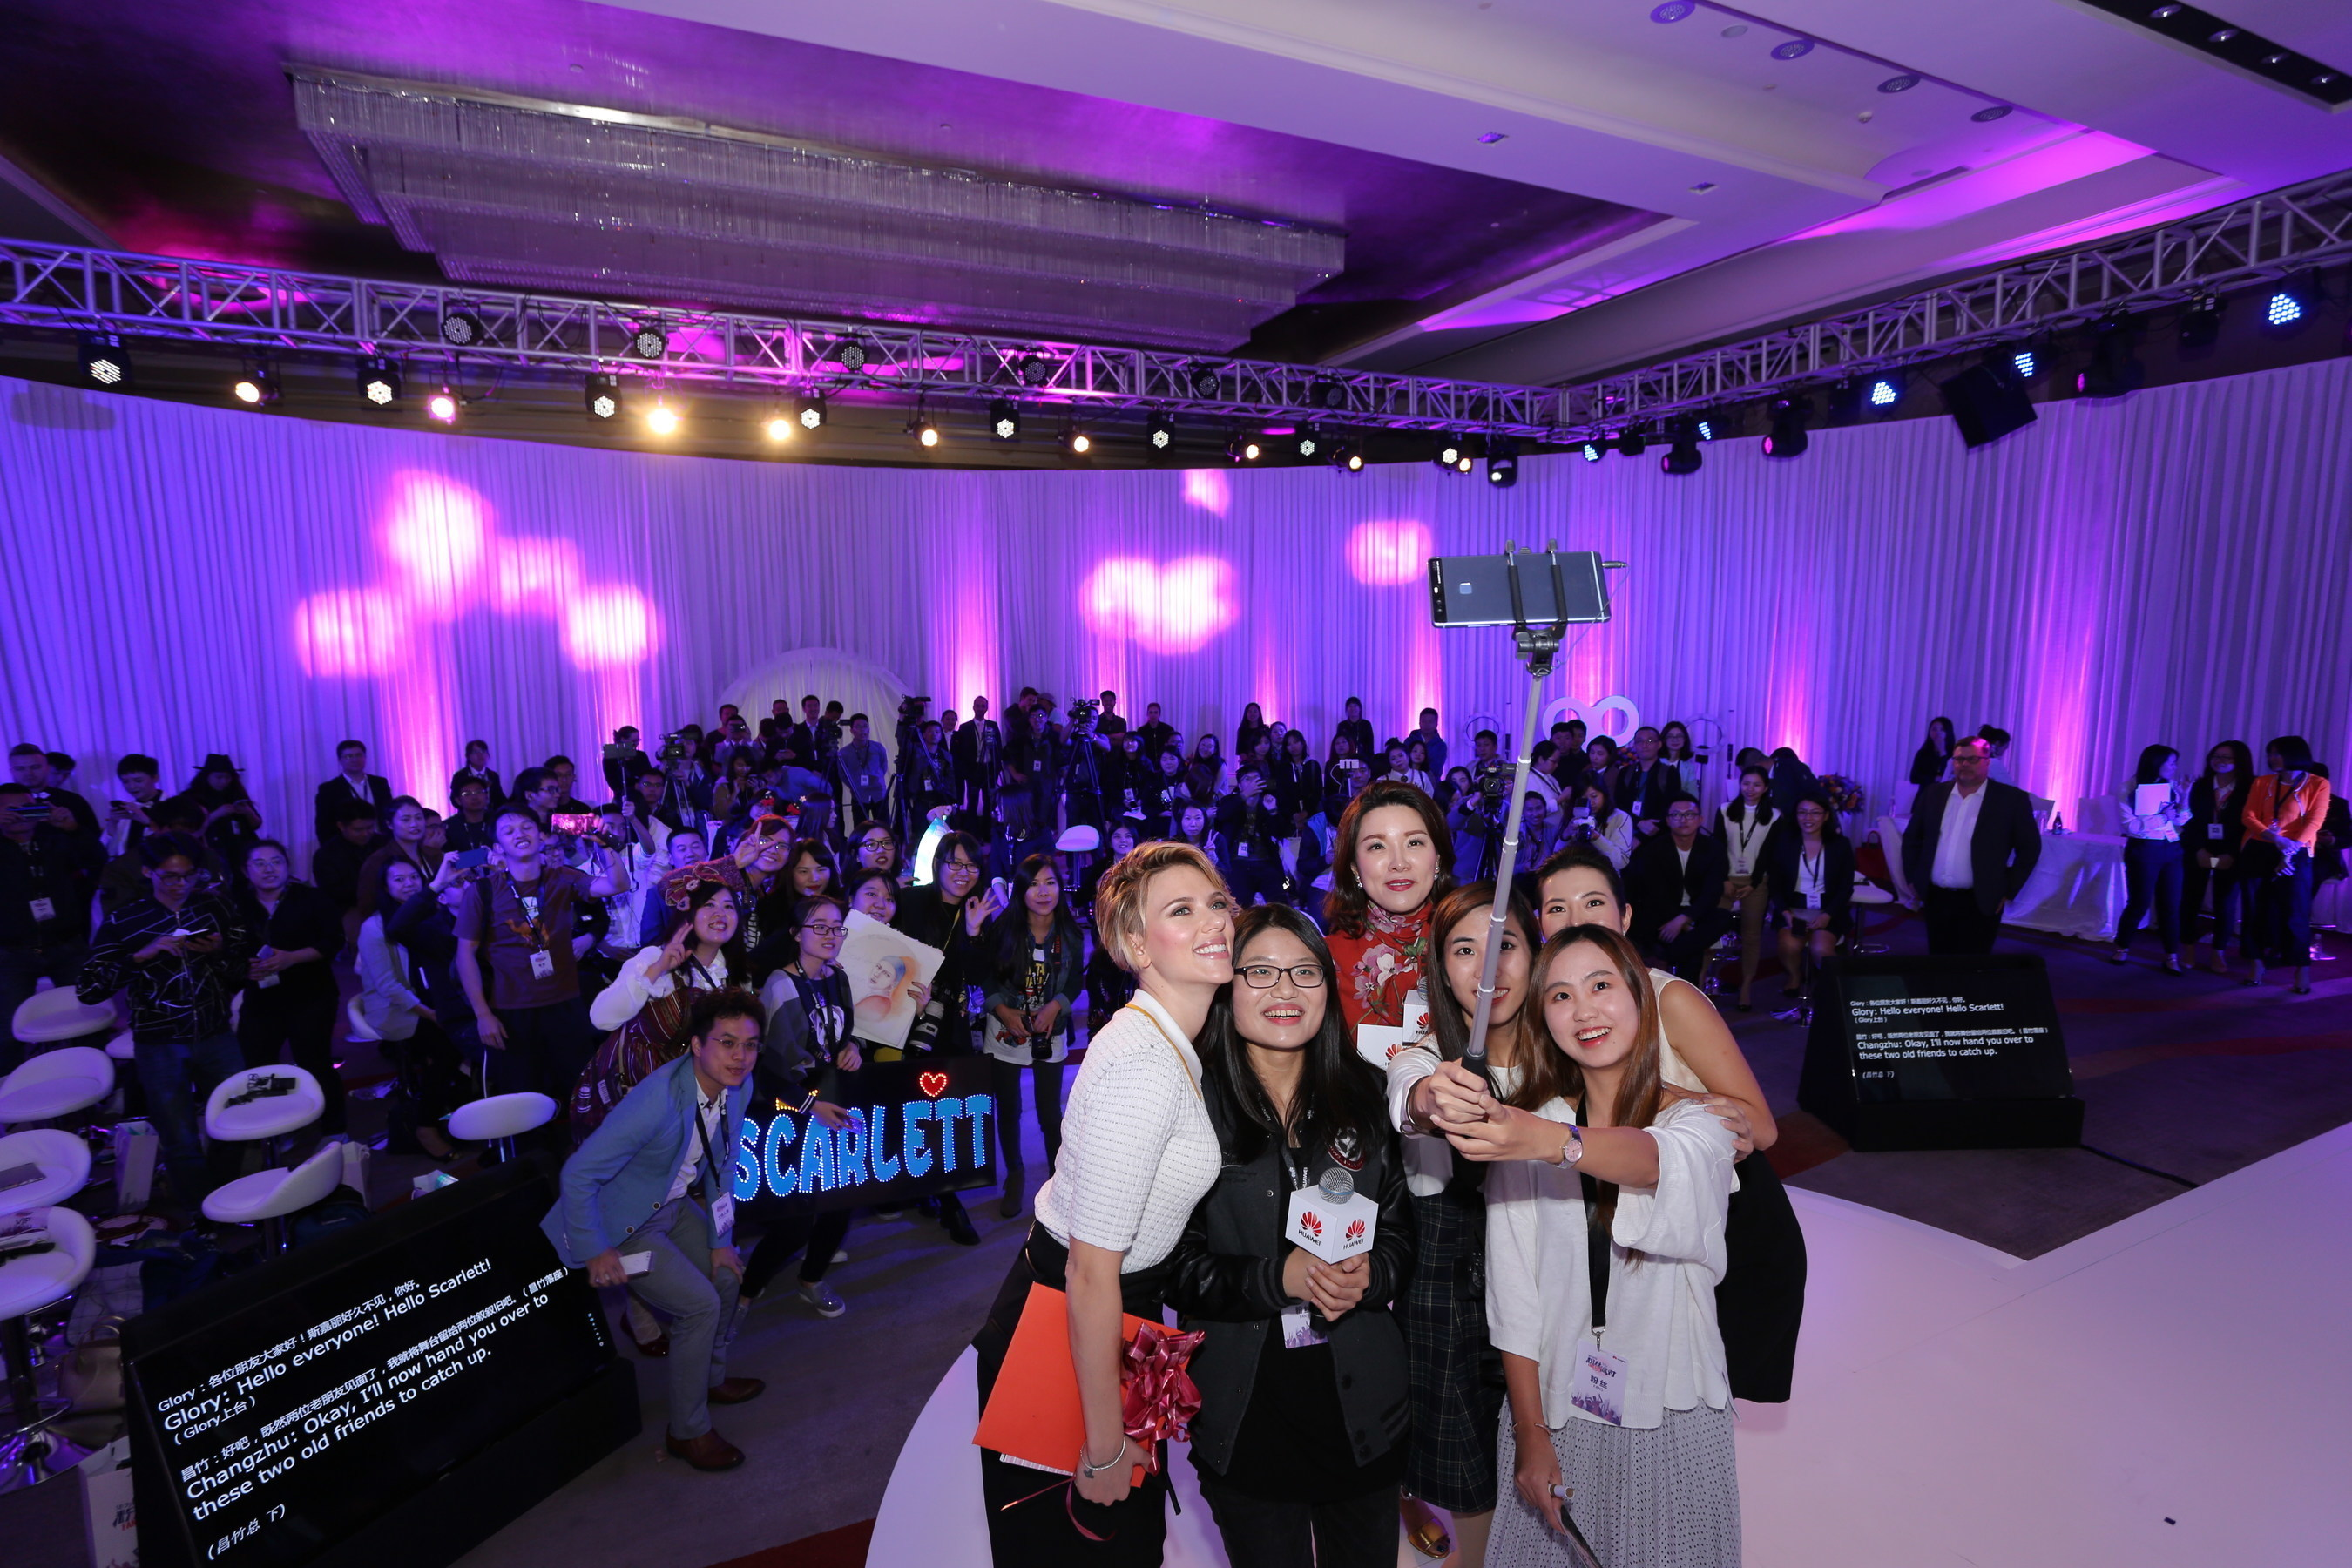 Scarlett Johansson shoots a selfie with fans at Huawei P9 Fans Club Party event in Guangdong, China